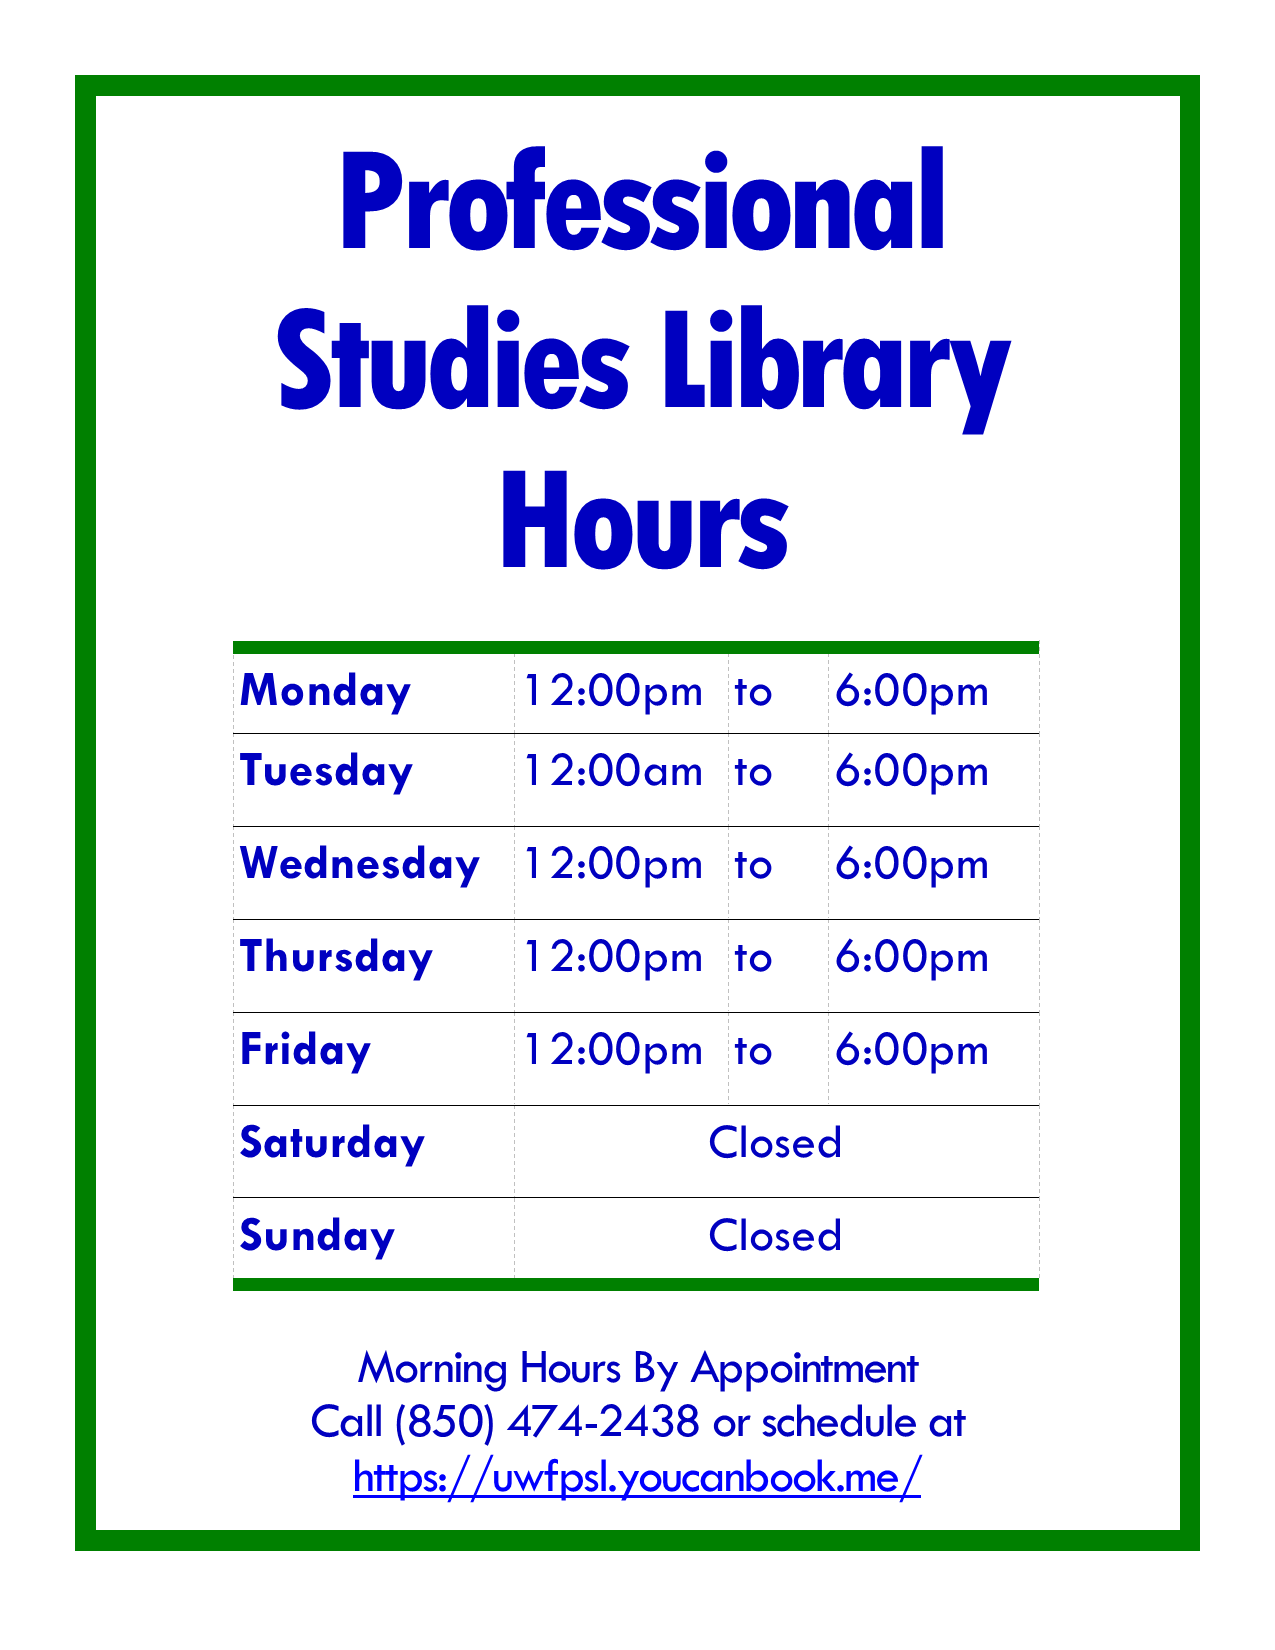 PSL Hours, Monday - Friday, 12:00pm - 6:00pm